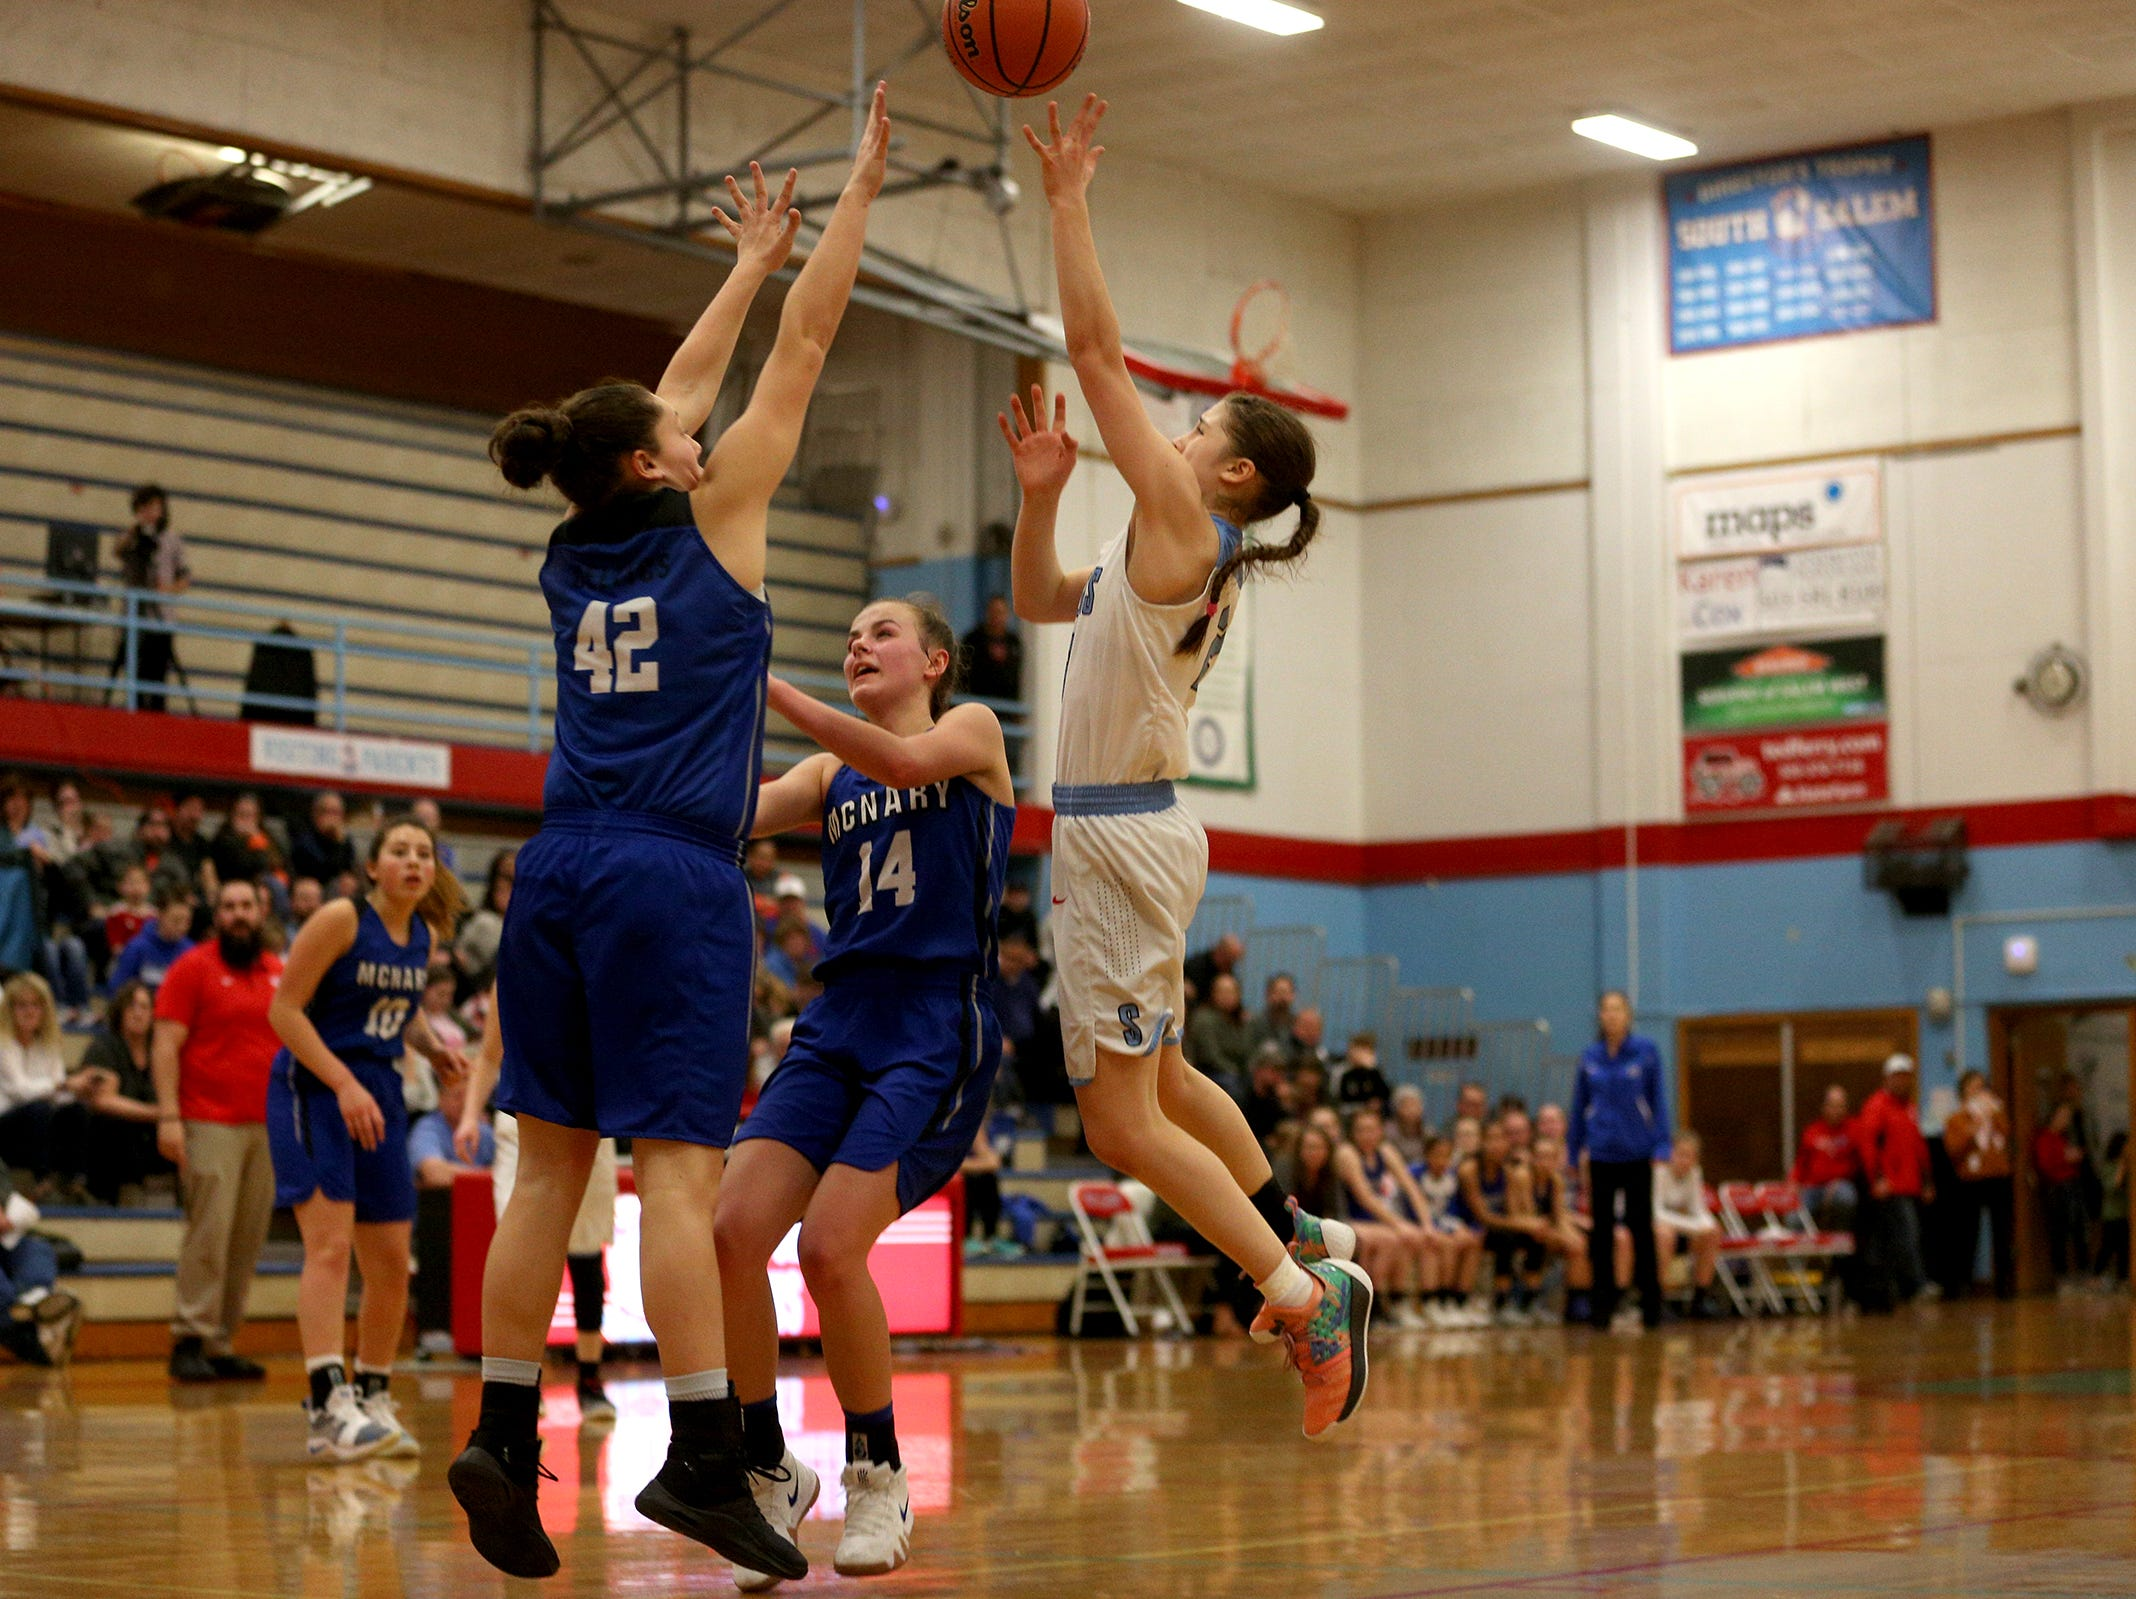 South Salem's Hilary James (2) goes up in the paint during the South Salem High School girls basketball game against McNary High School in Salem on Thursday, Jan. 31, 2019.